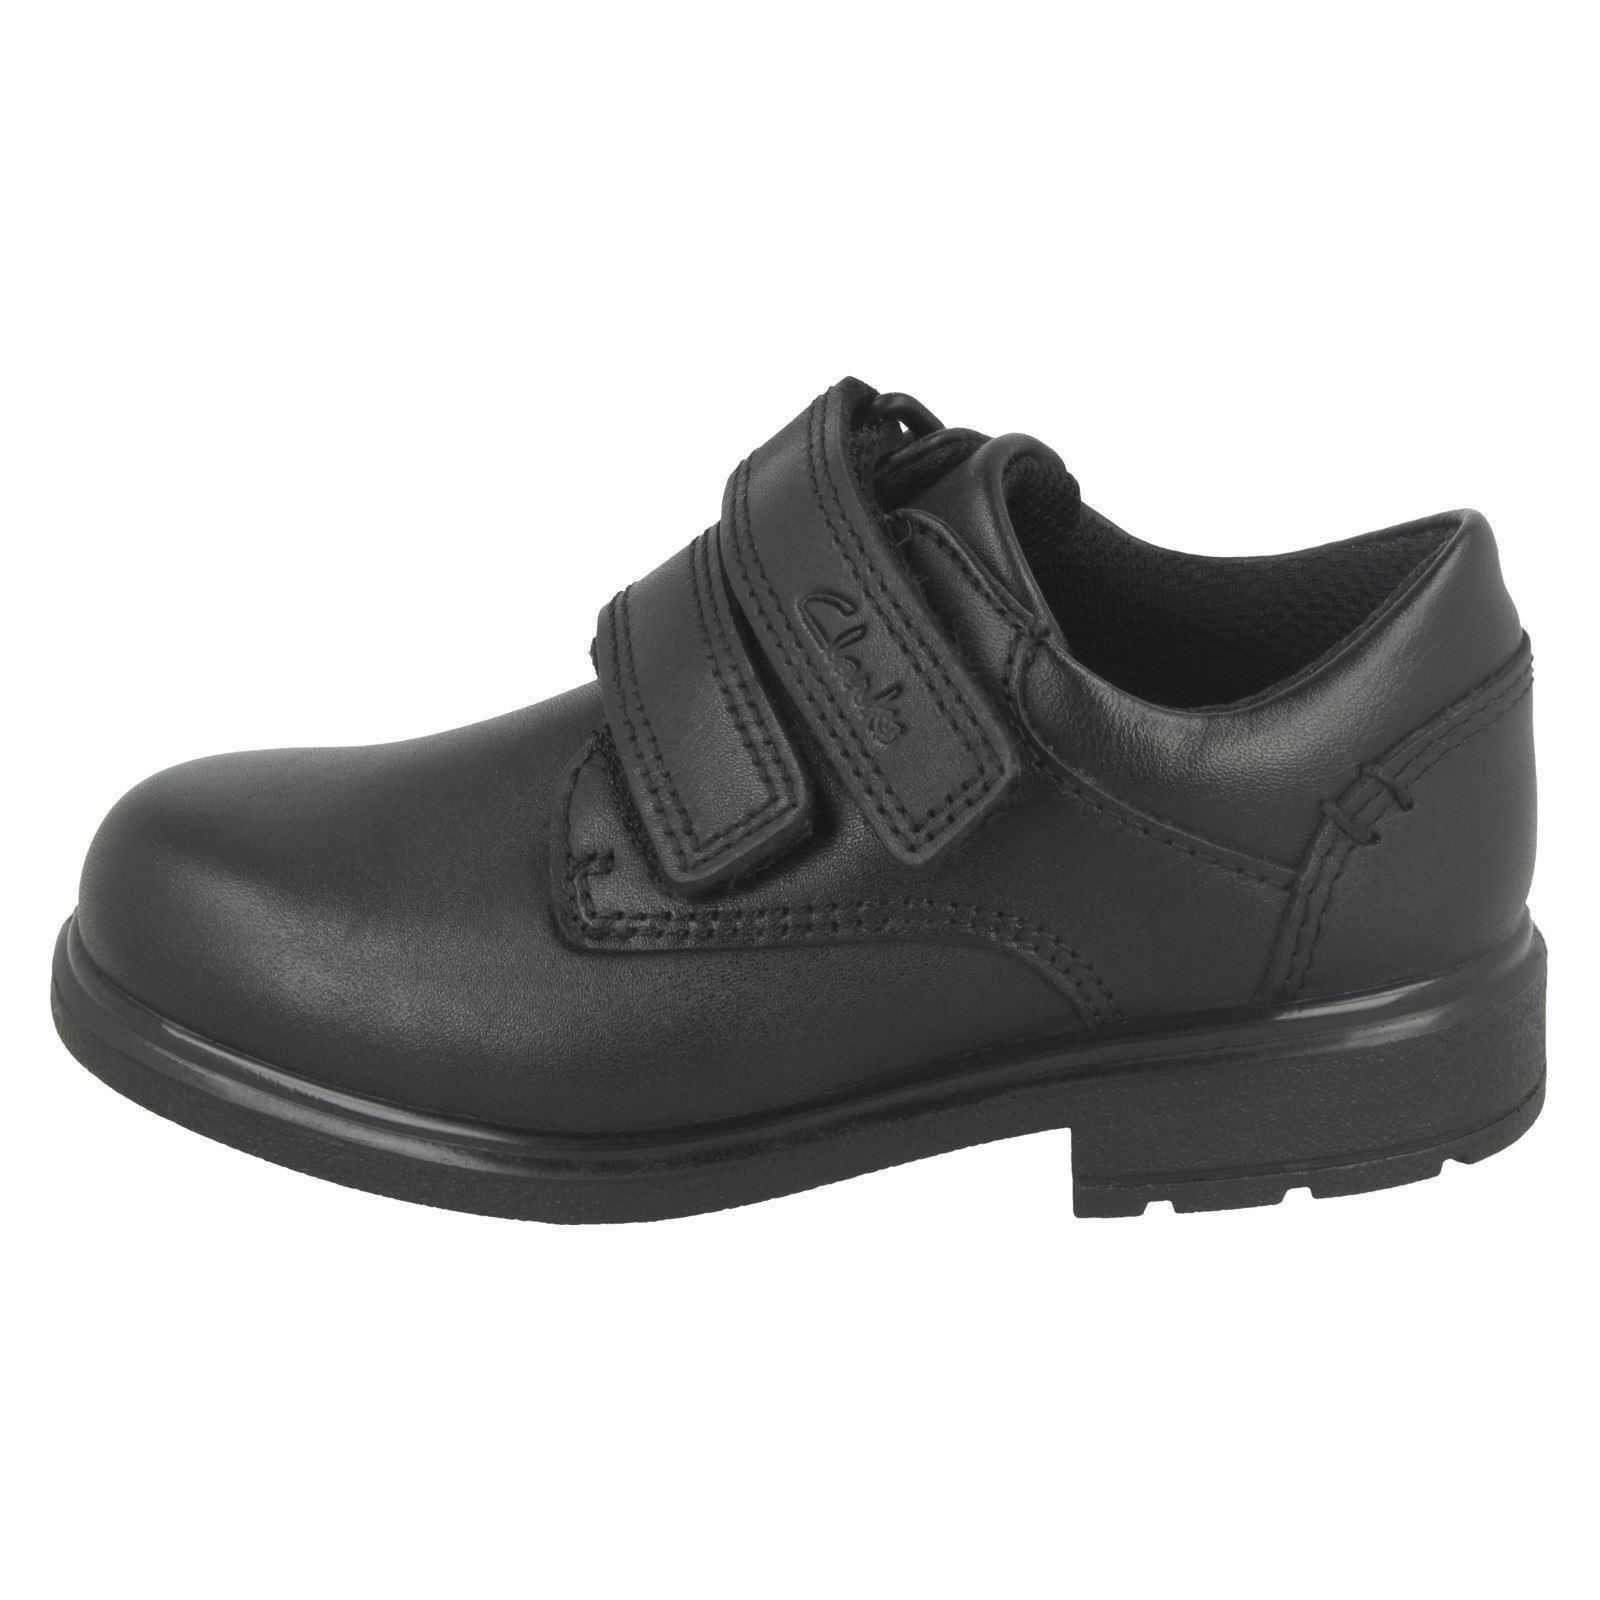 Boys Clarks Formal Double Hook /& Loop Strap Leather School Shoes Remi Pace